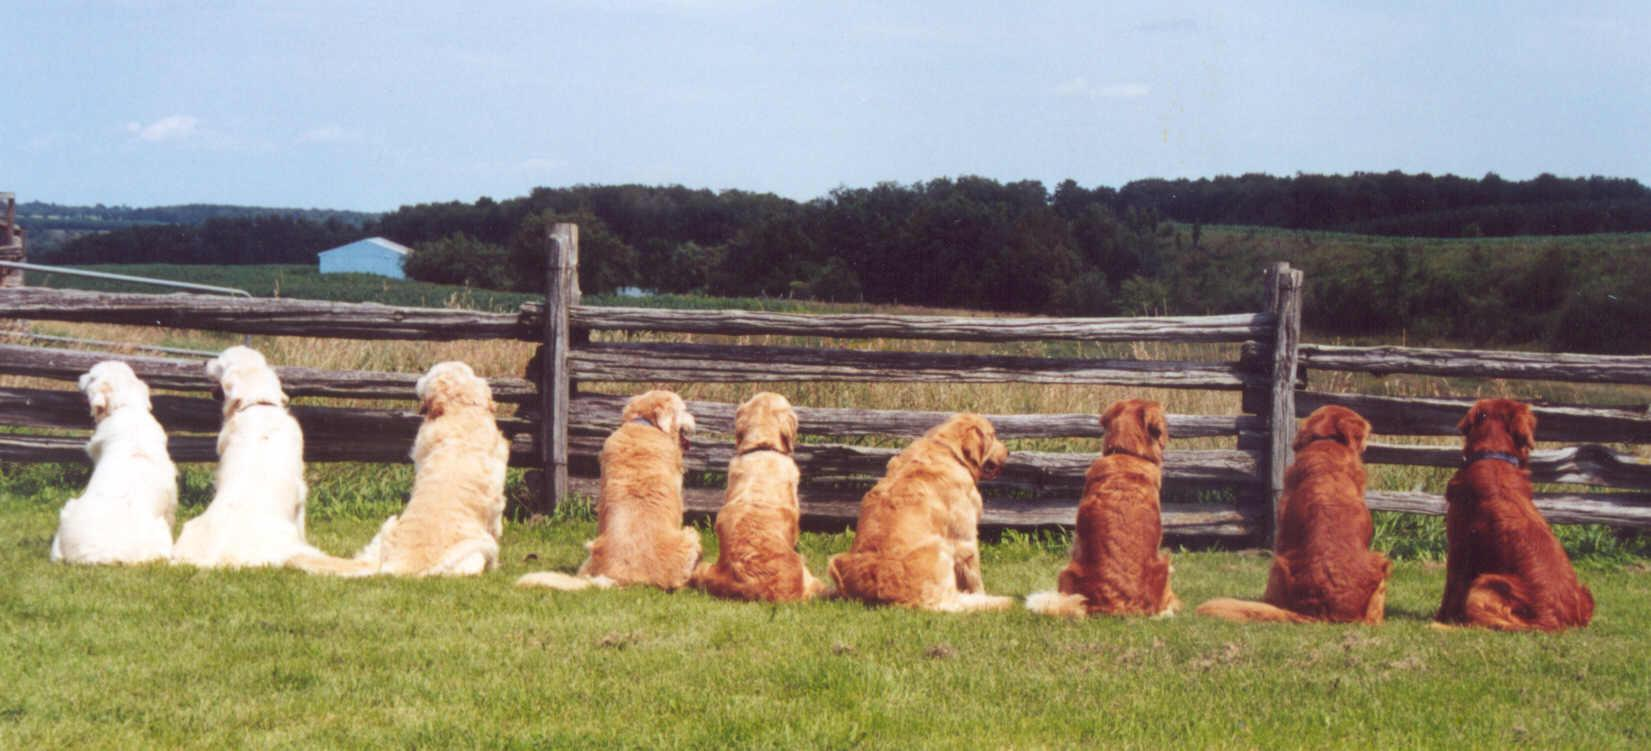 Different shades and types of Golden retrievers